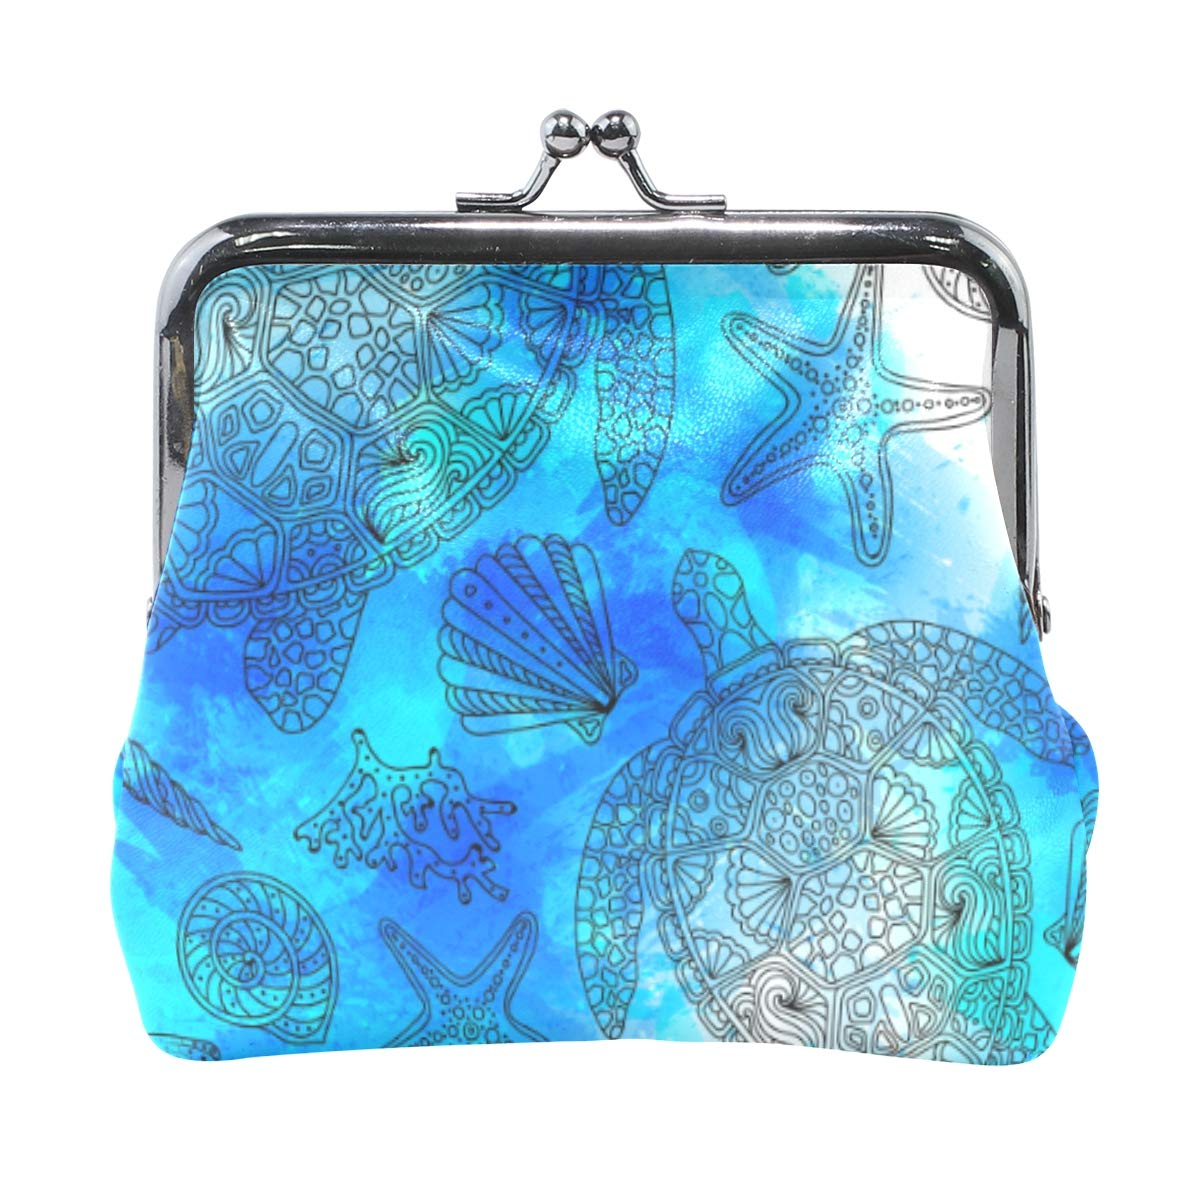 WIHVE Fashion Womens Coin Purse Watercolor Sea Turtle Shell Algae Starfish Coral Blue And Turquoise Vintage Pouch Mini Purse Wallets